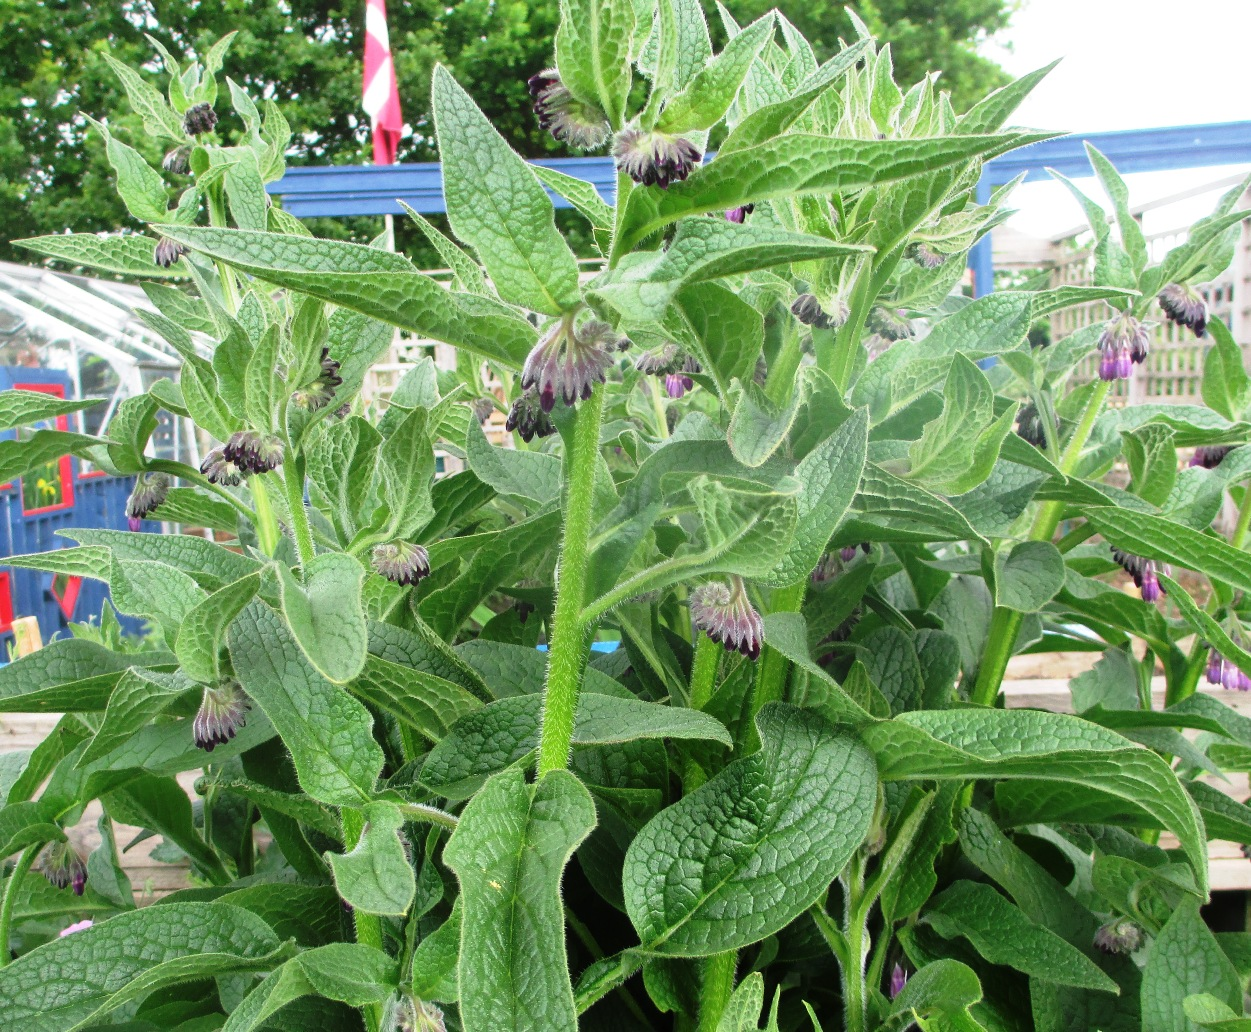 Comfrey plants growing at my allotment